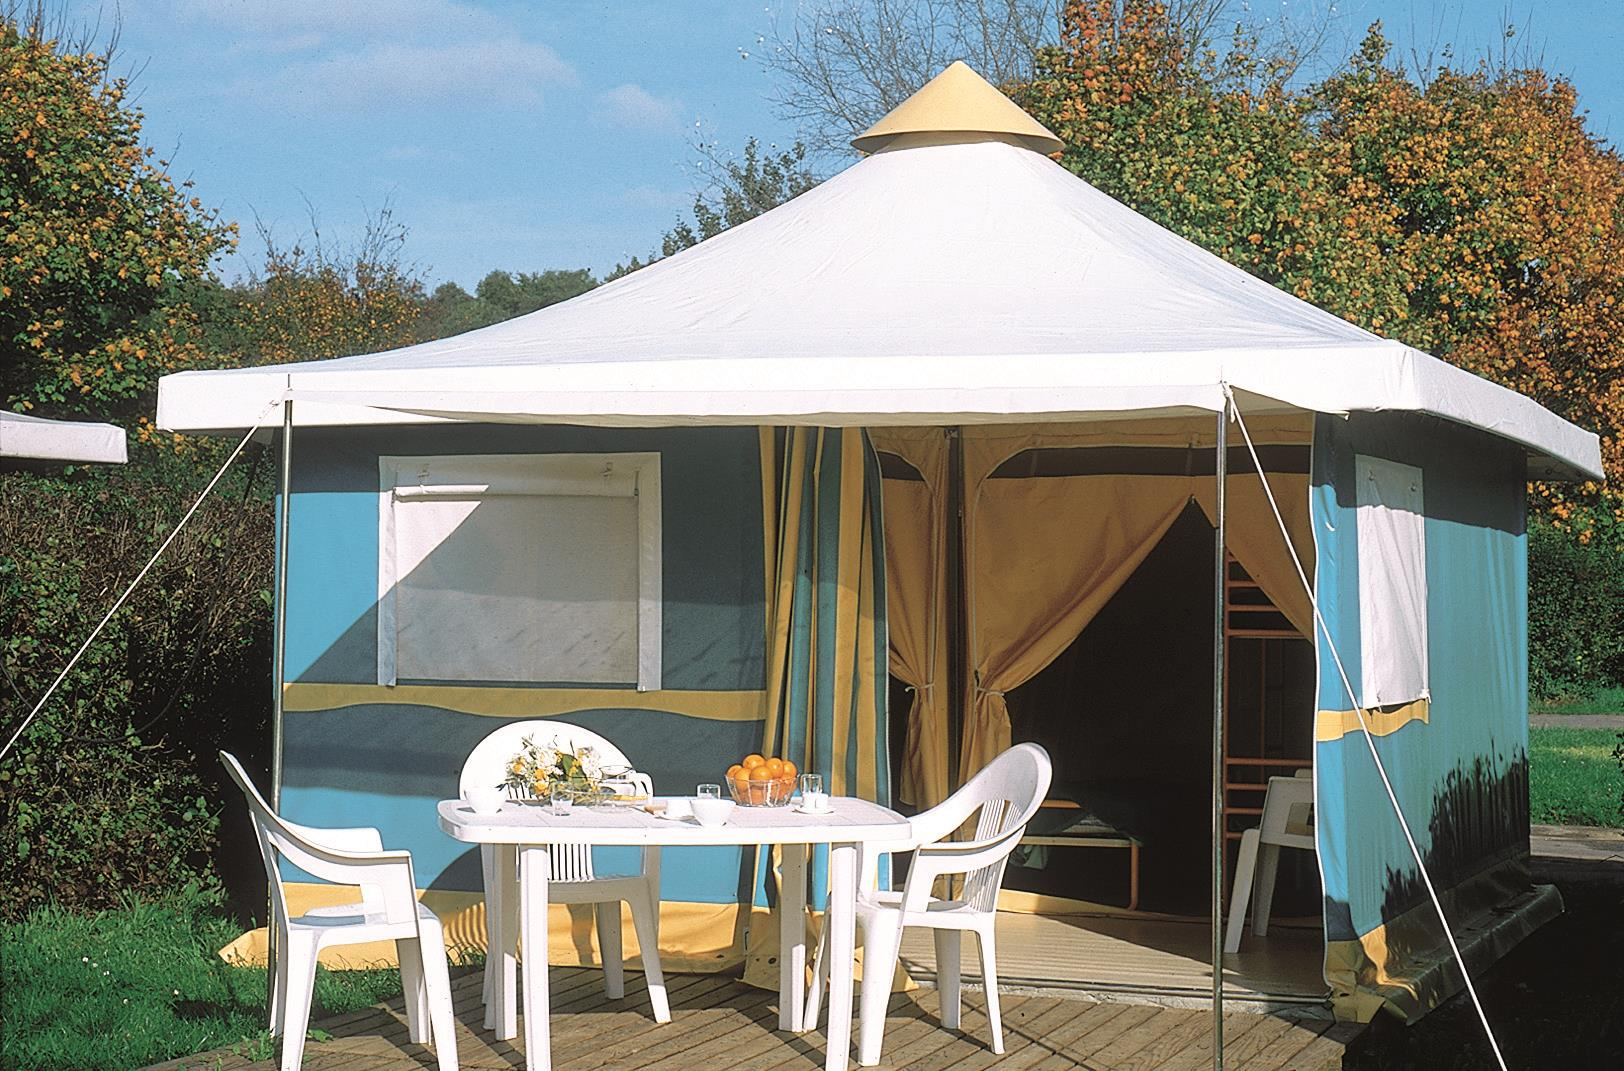 Huuraccommodatie - Bungalowtent 25 M² (2 Kamers) + Terras Confort + - Flower Camping Le Riviera